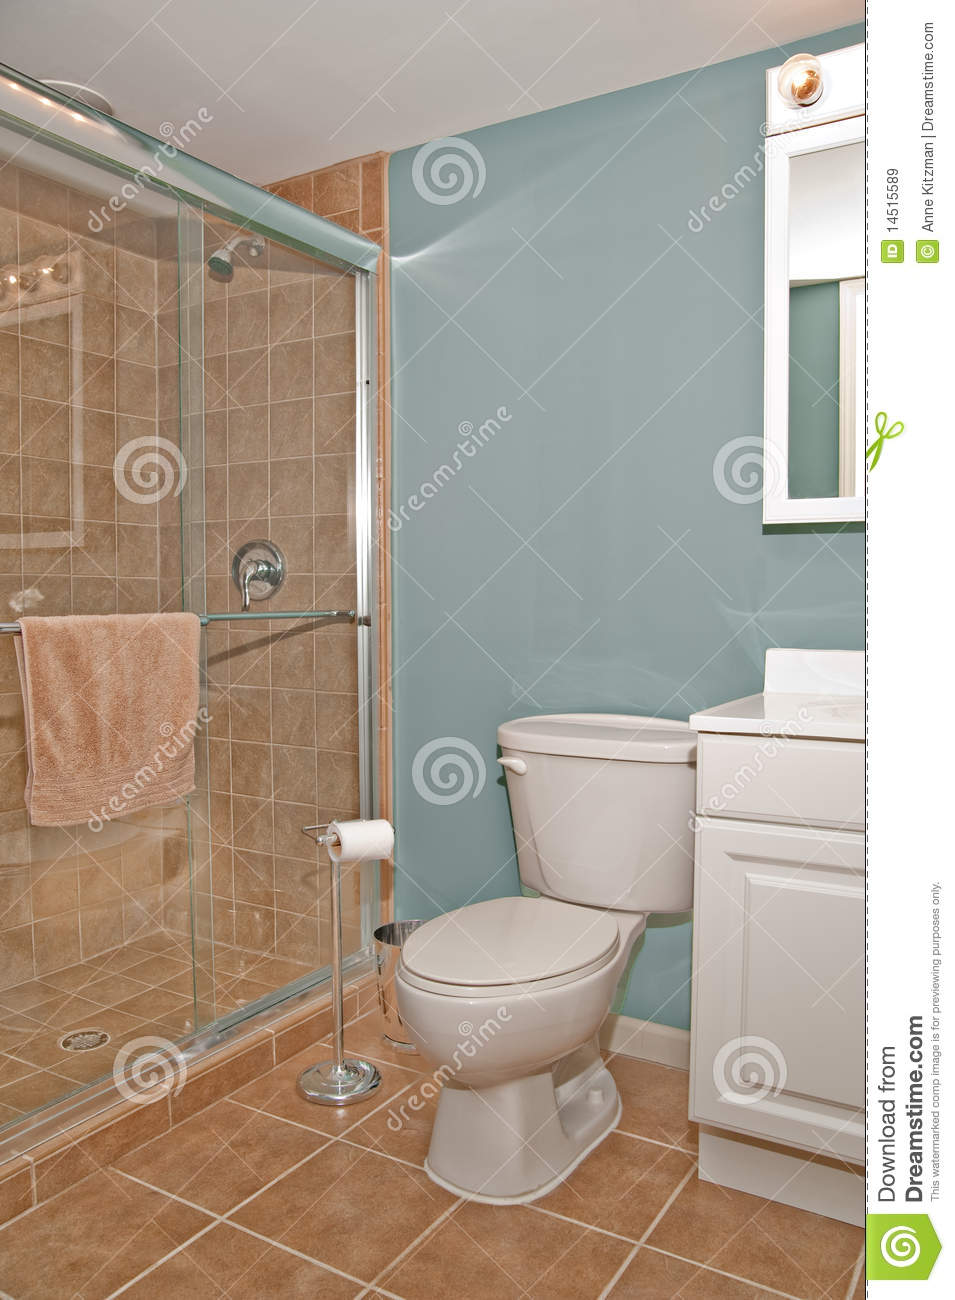 Bathroom Toilet And Shower Stall Stock Image Image 14515589